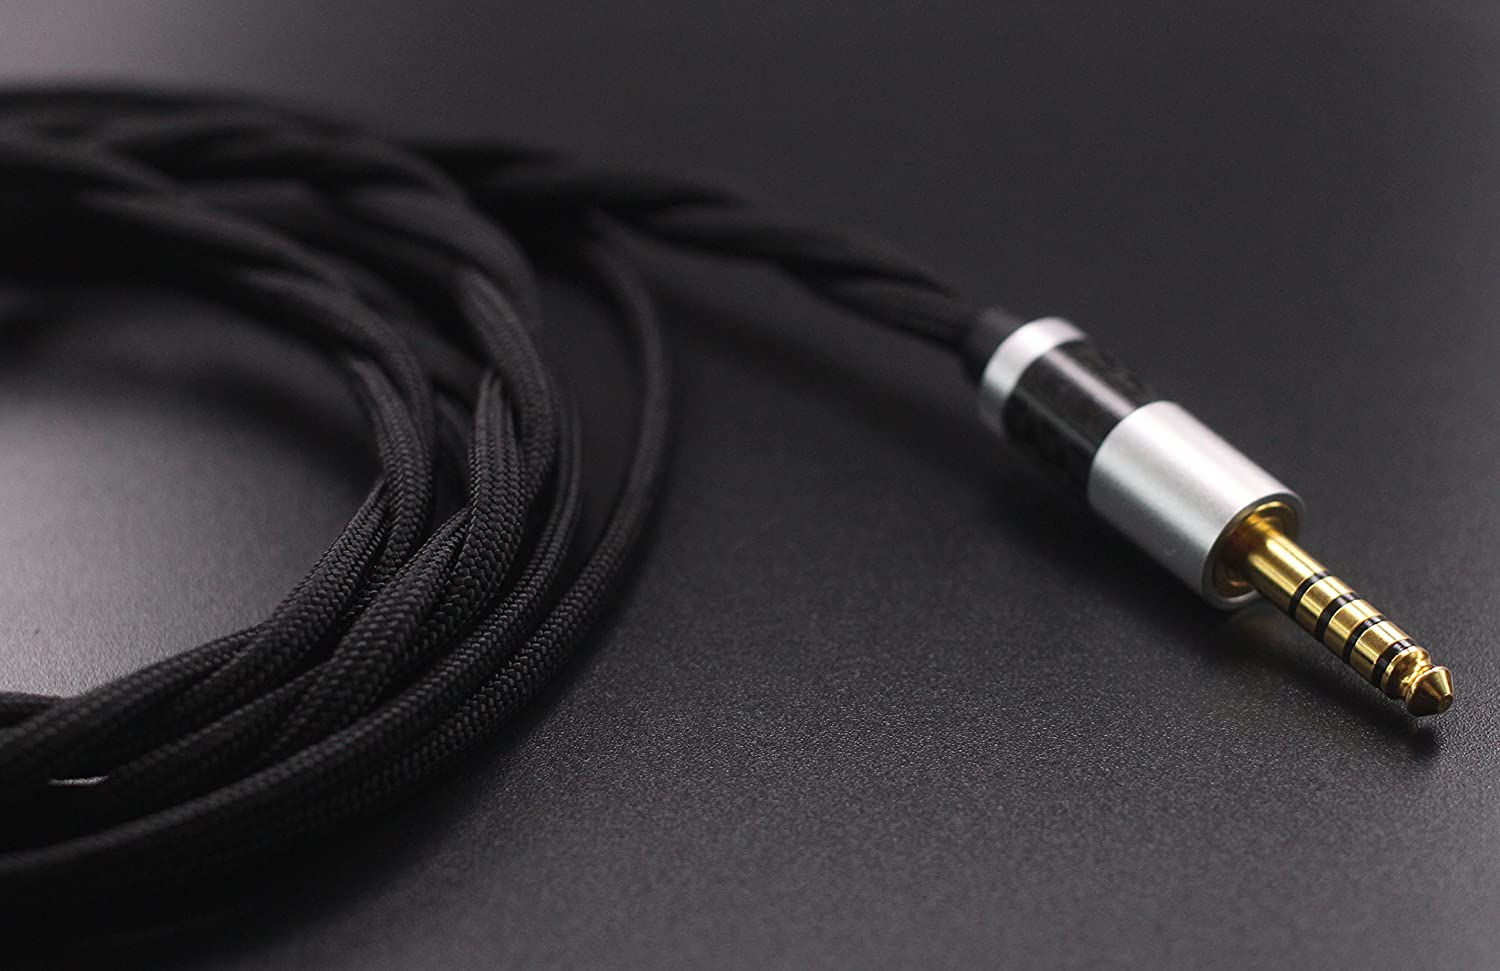 Amazon.com: BDL-4 4.4MM Balanced Male TO Dual 3.5mm Connector ...